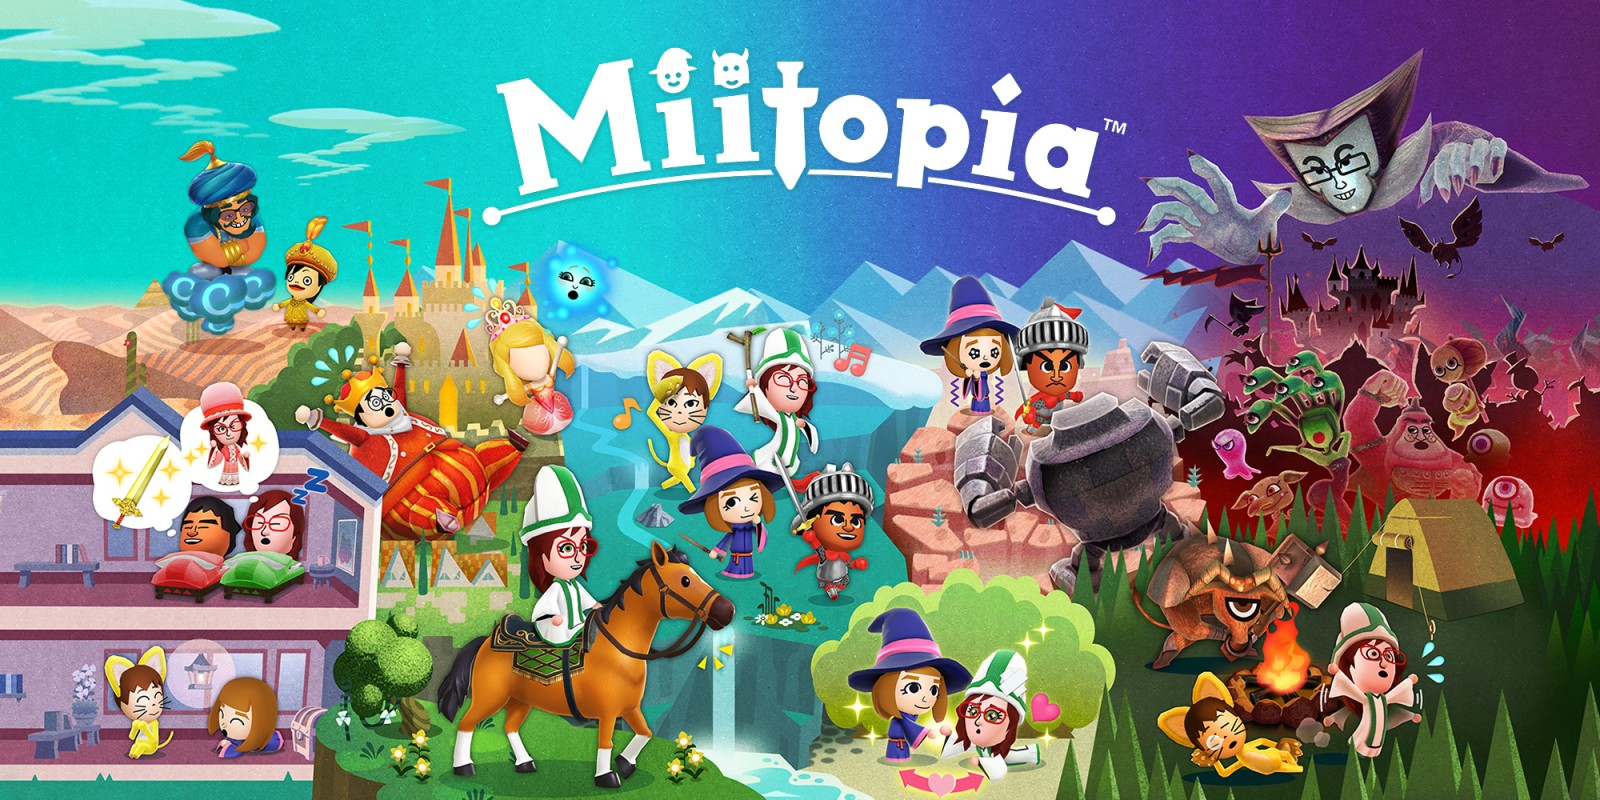 Miitopia: Trailer shows new features of the switch port